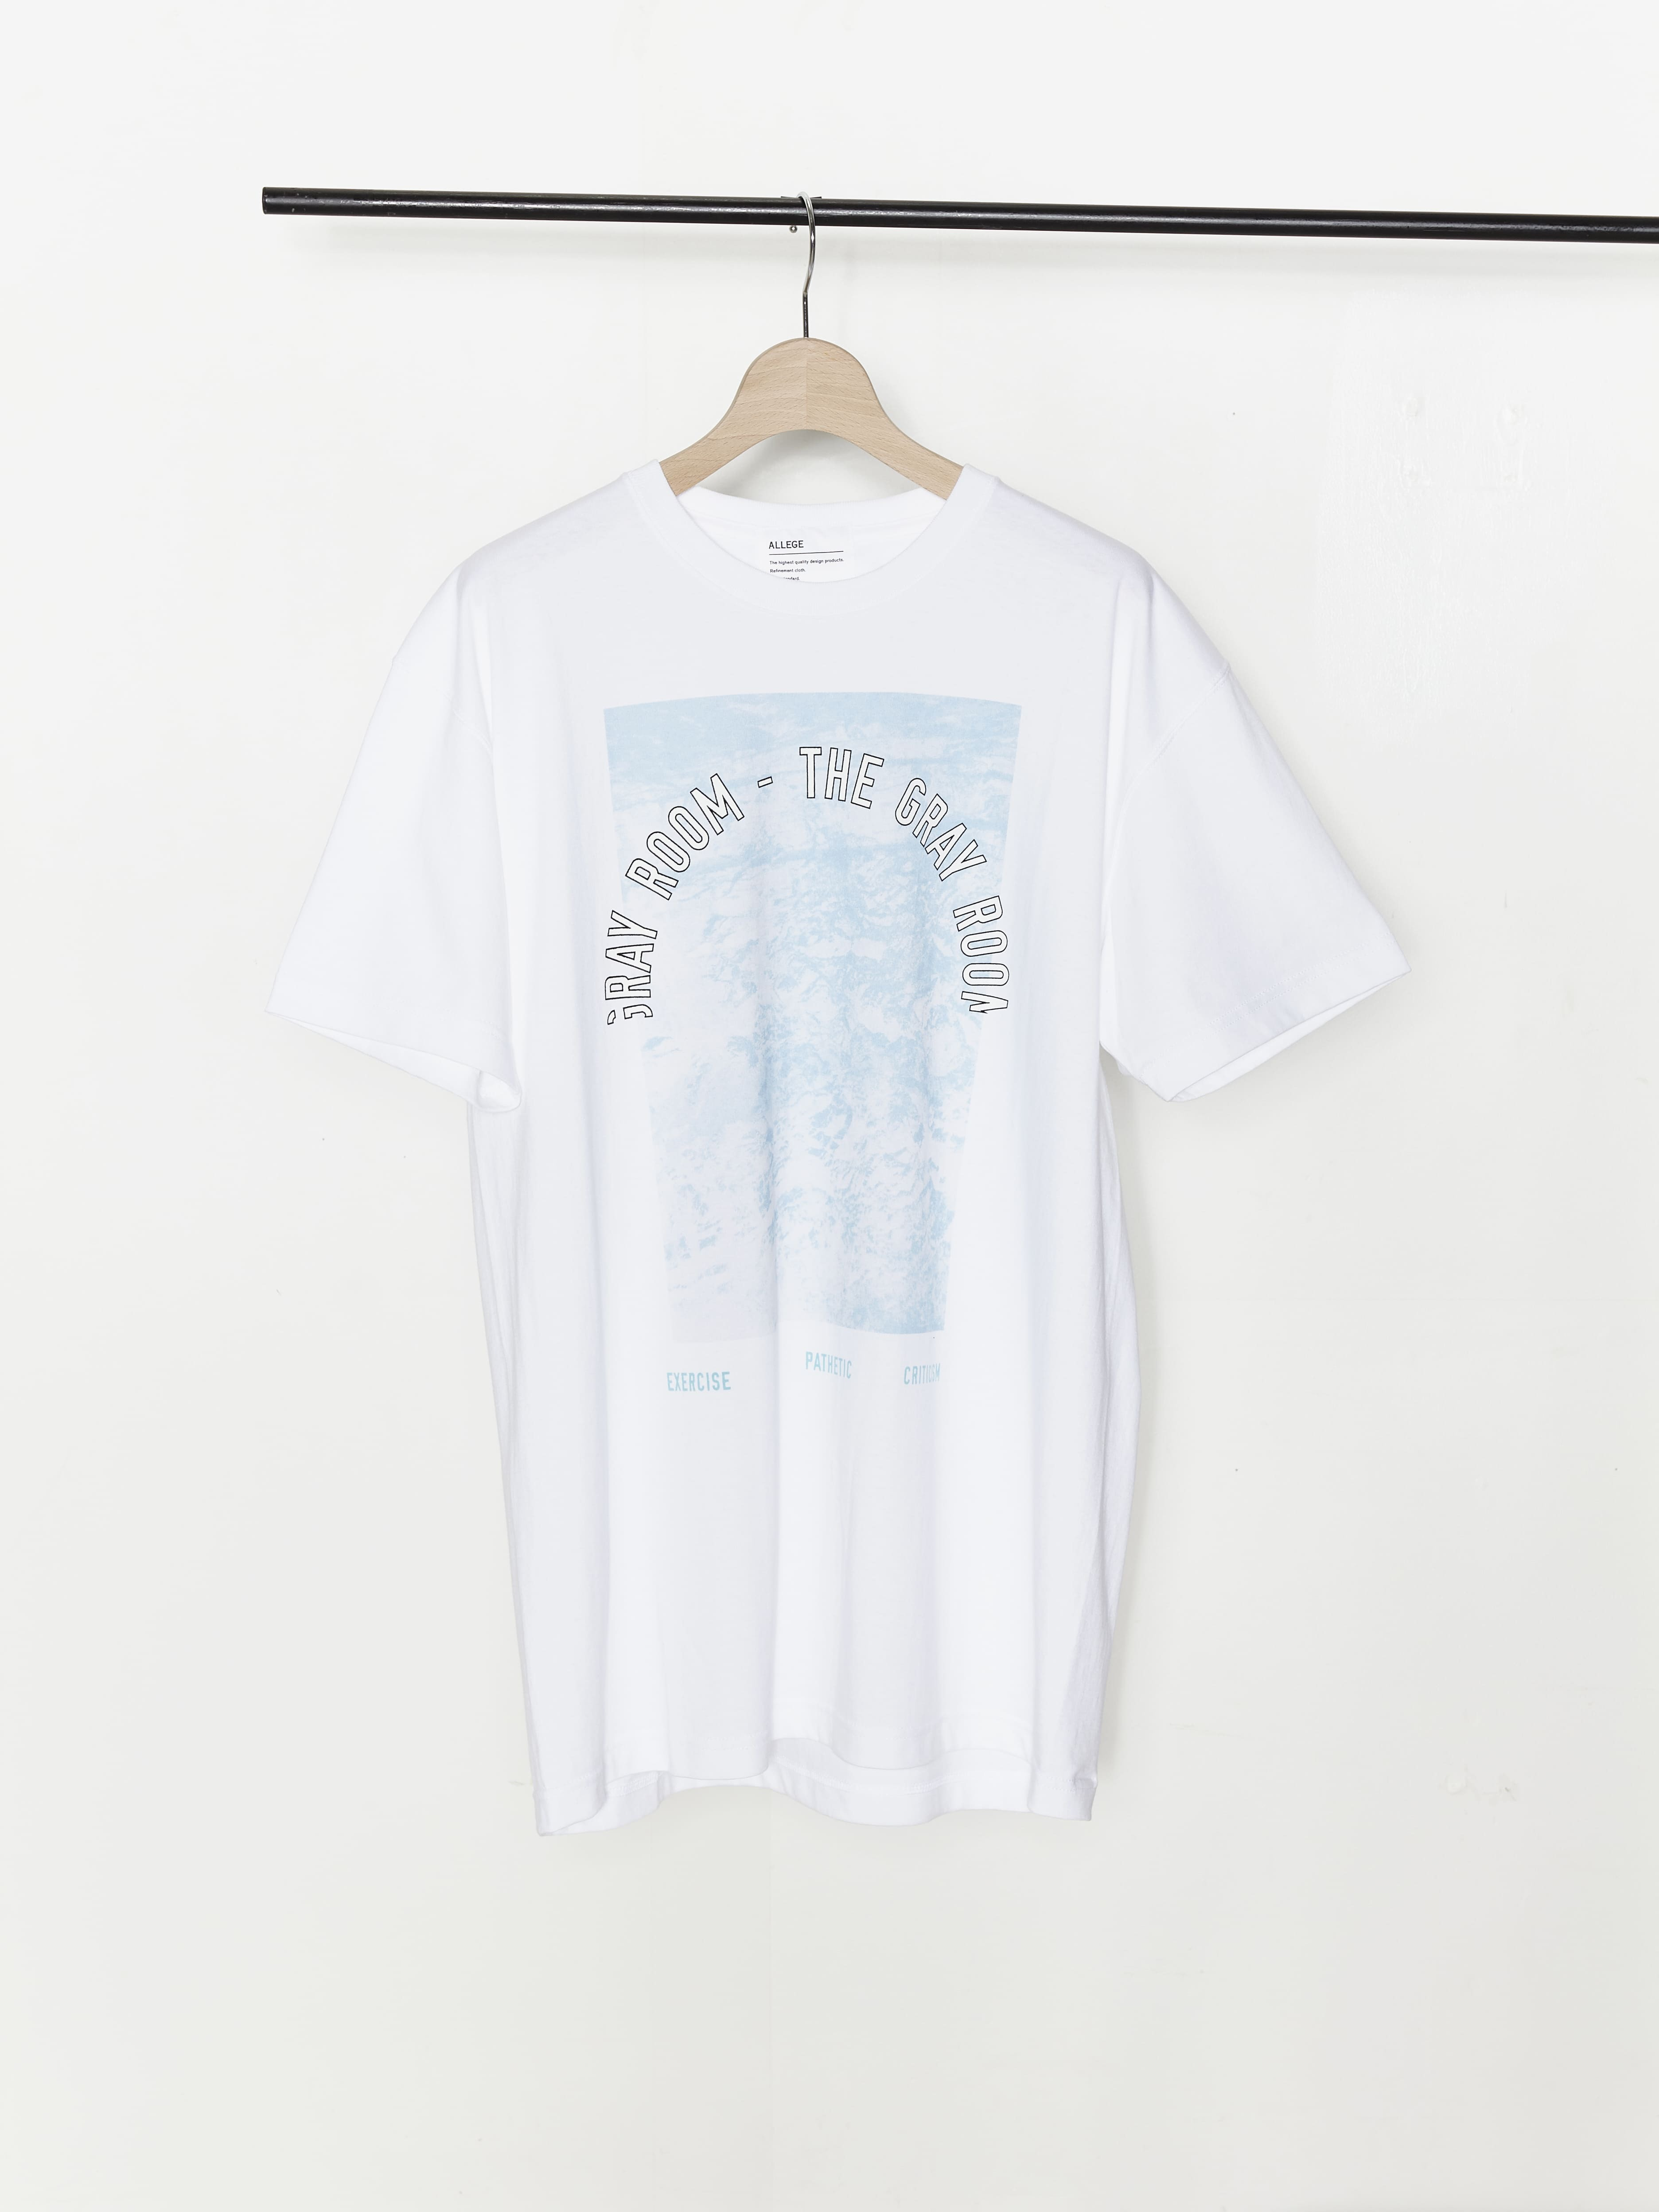 ALLEGE The Gray Room T-Shirt